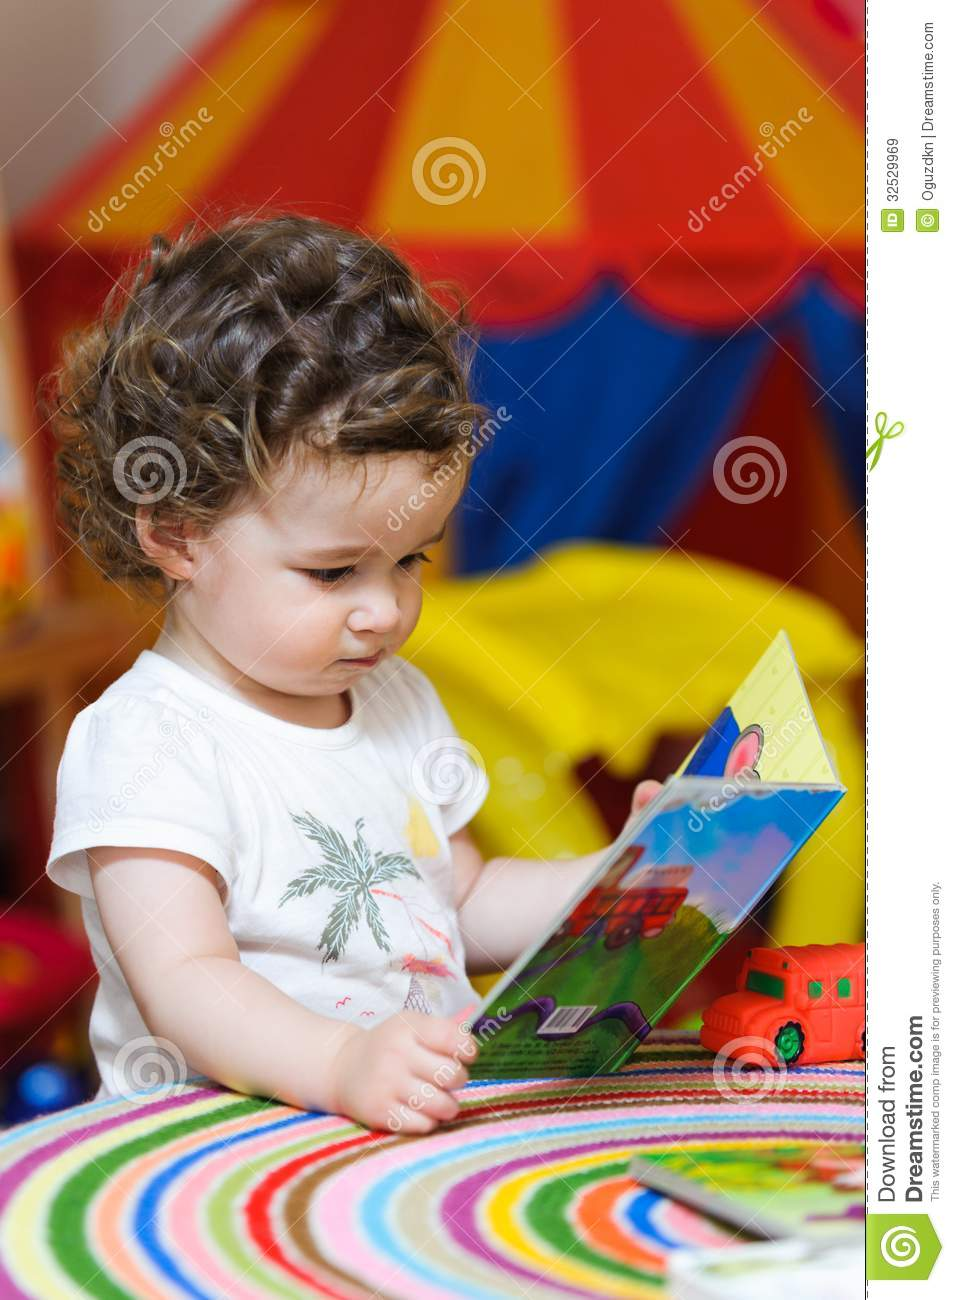 Preschool Baby Girl Looking A Picture Book Royalty Free Stock Images - Image: 32529969